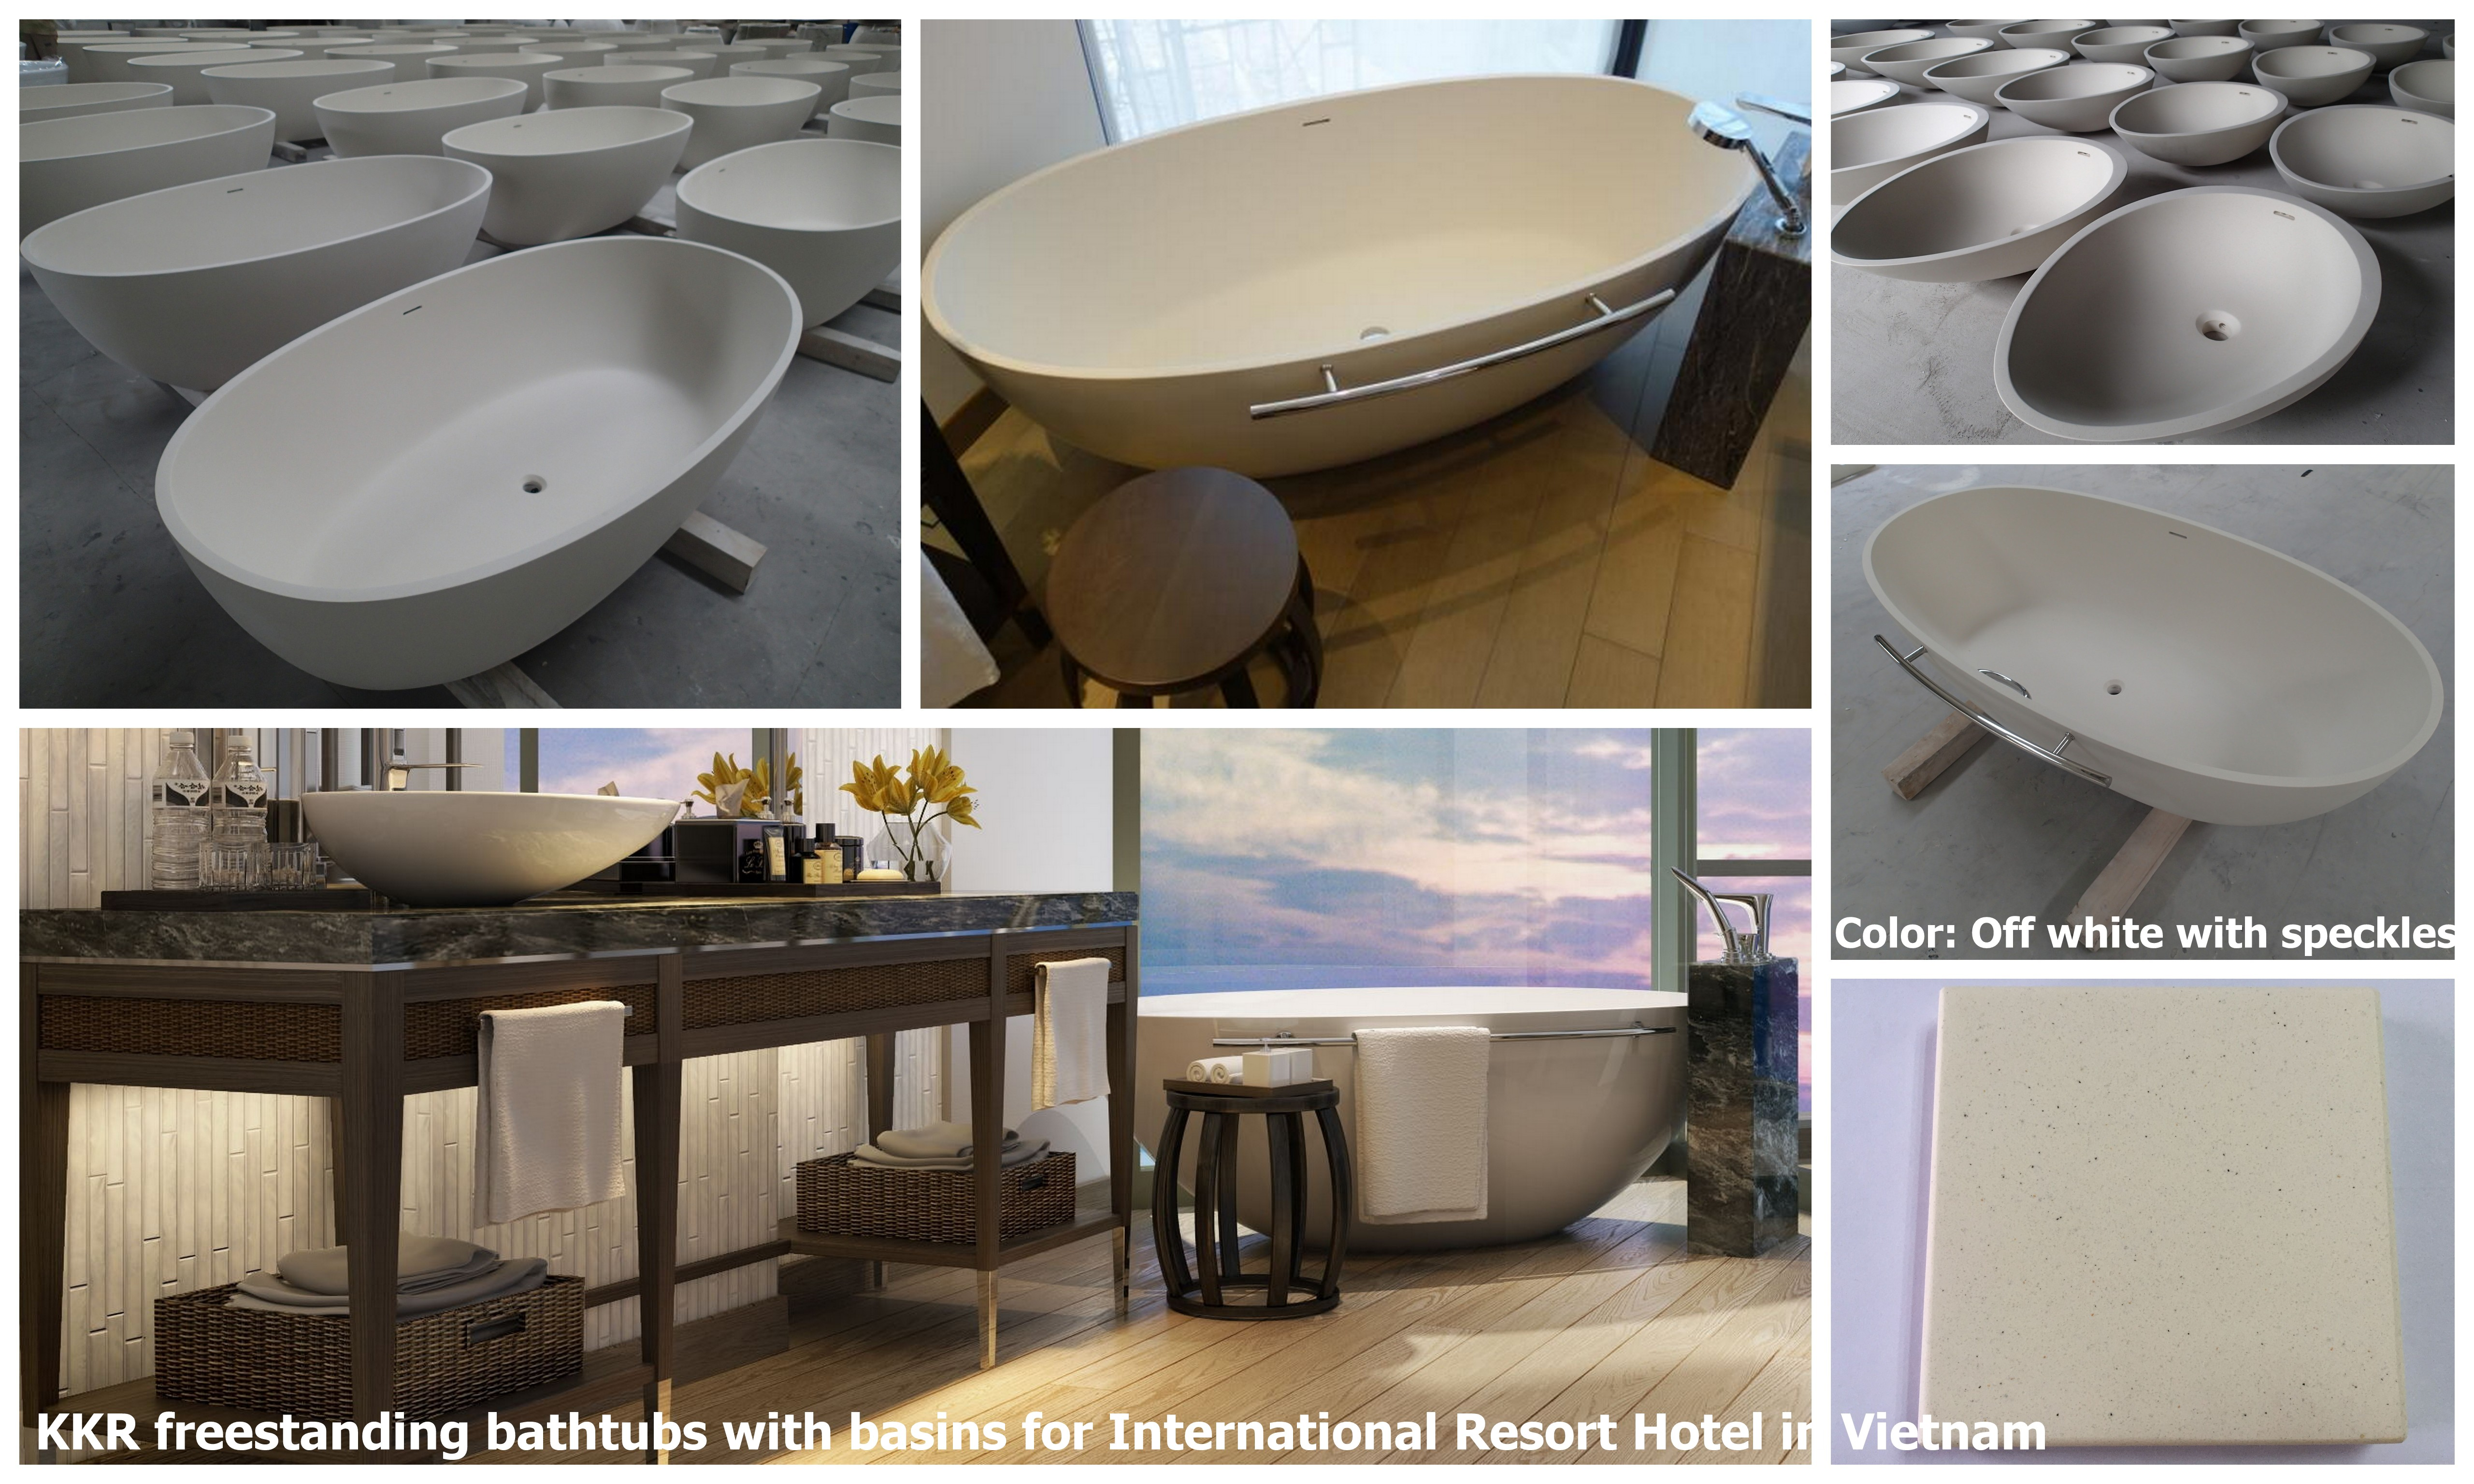 KKR off white speckle bathtub for hotels2.jpg